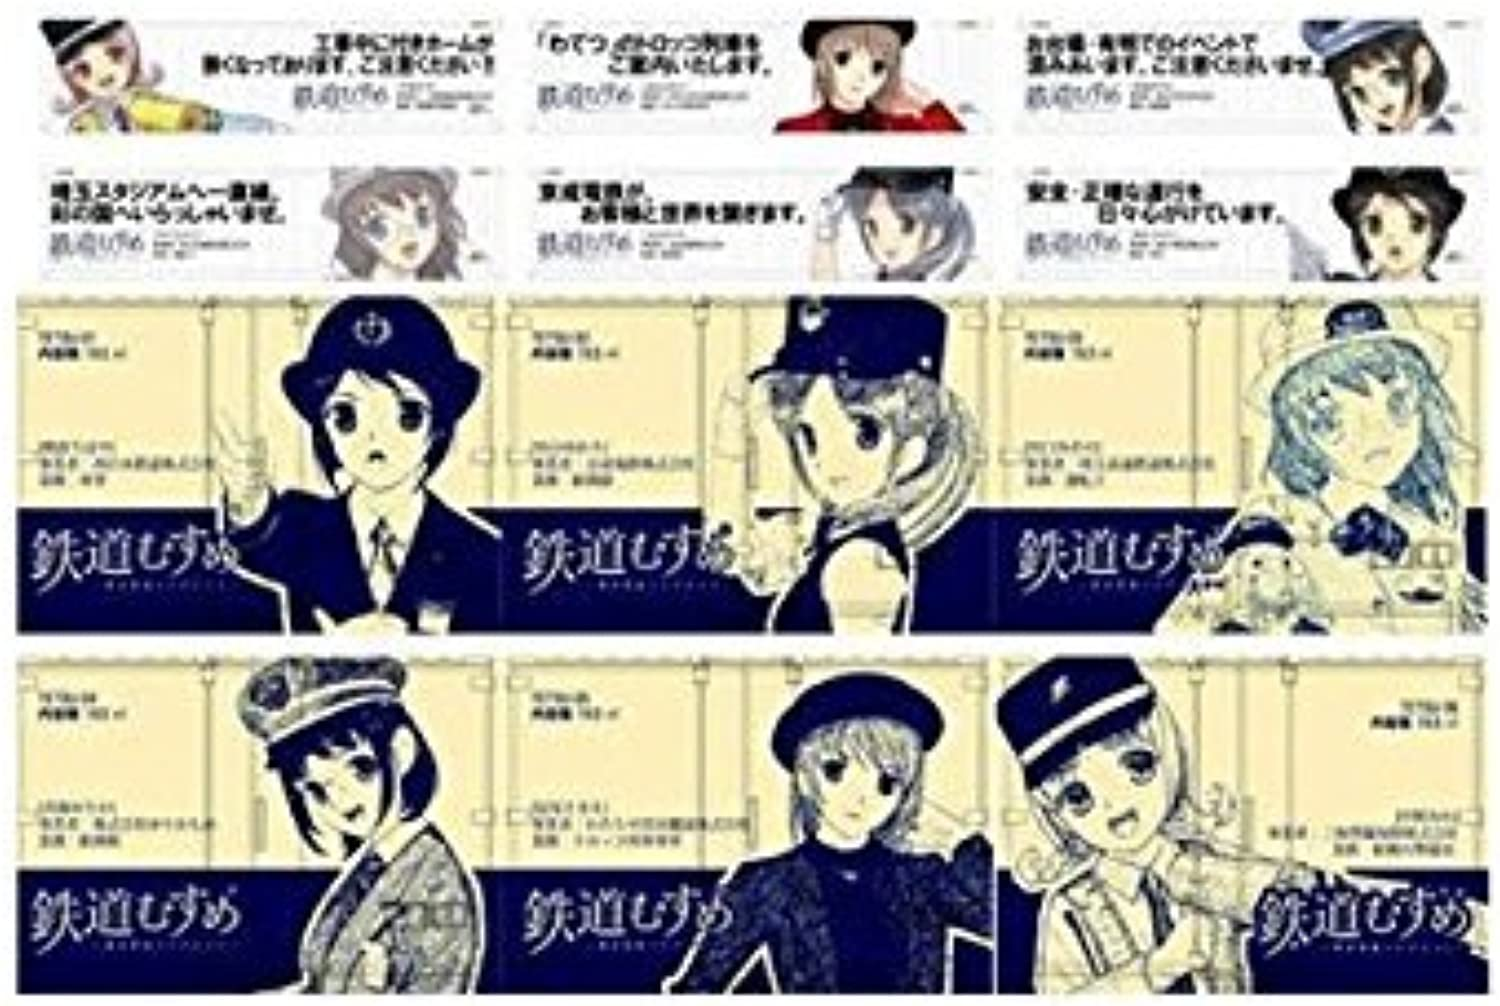 Railway daughter container collection vol.3 BOX (japan import)